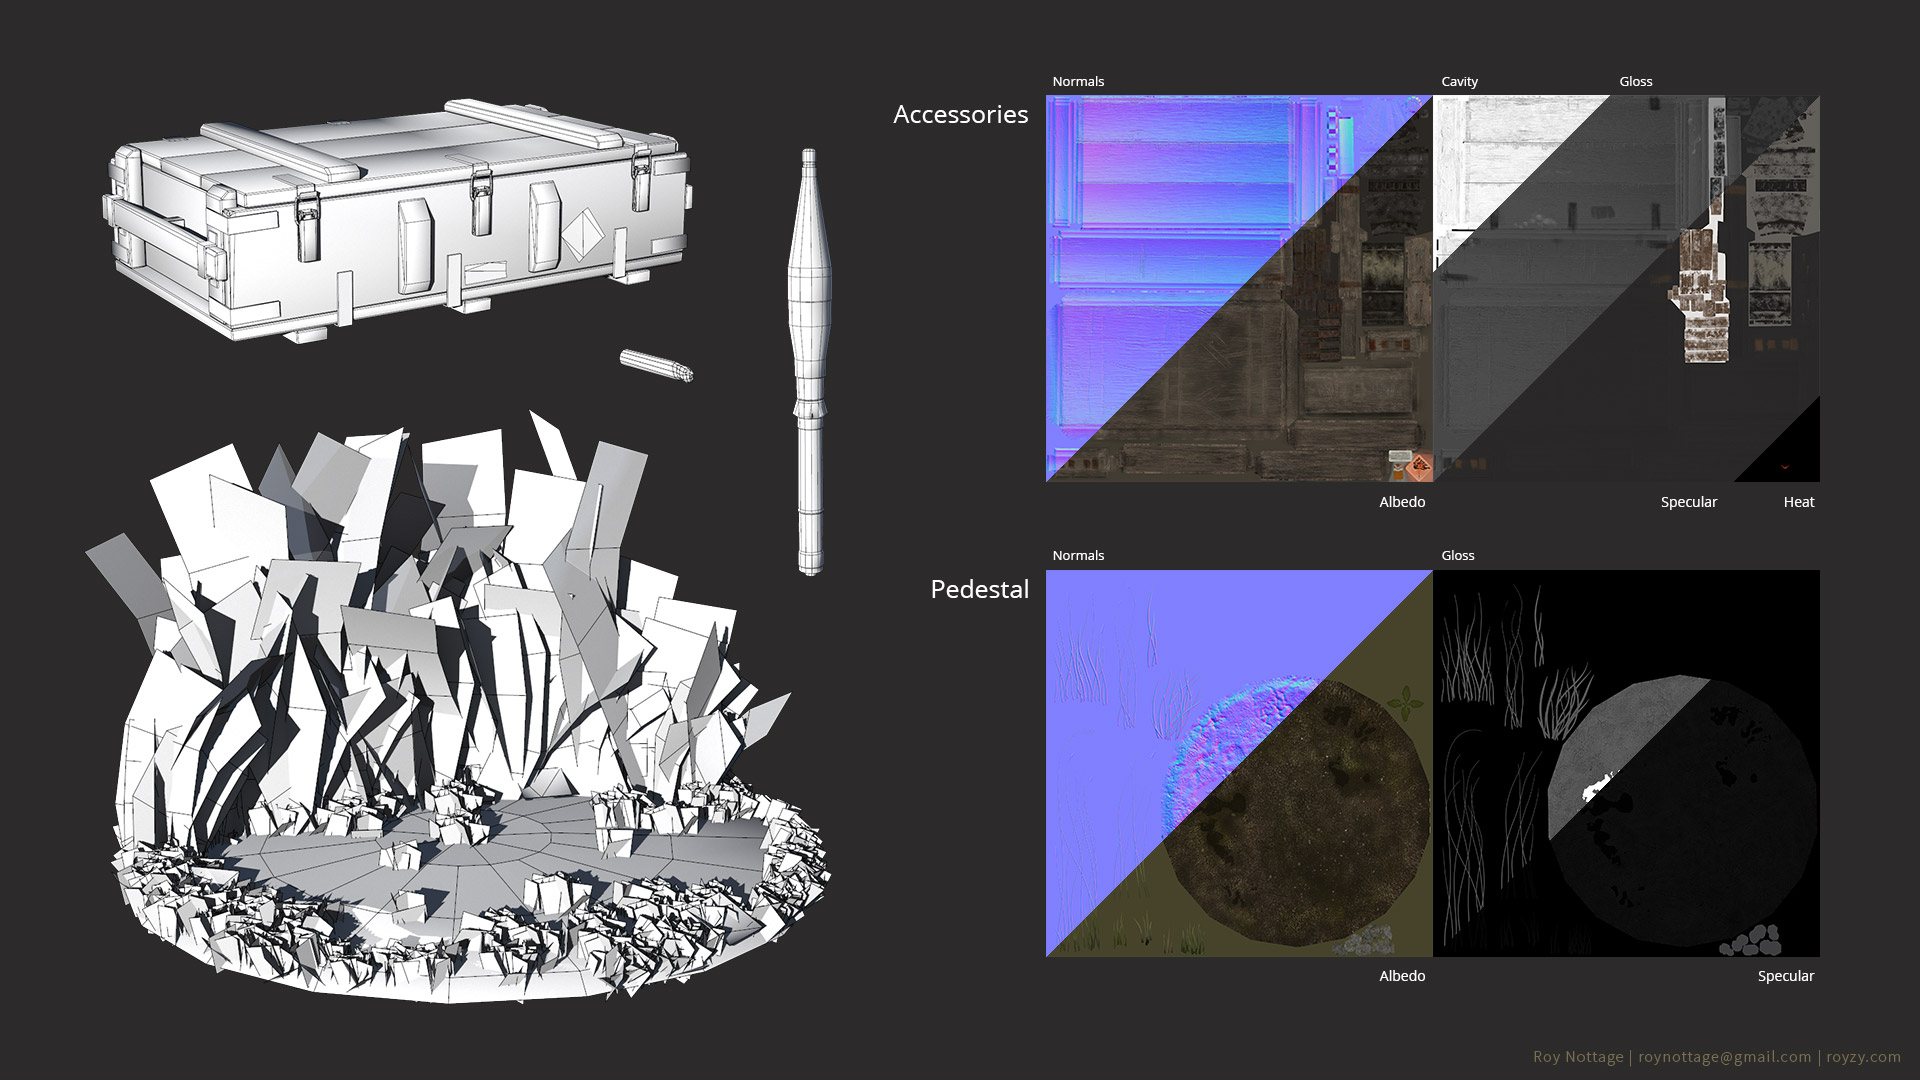 Wireframes and Textures of Accessories and Pedestal 3D Models